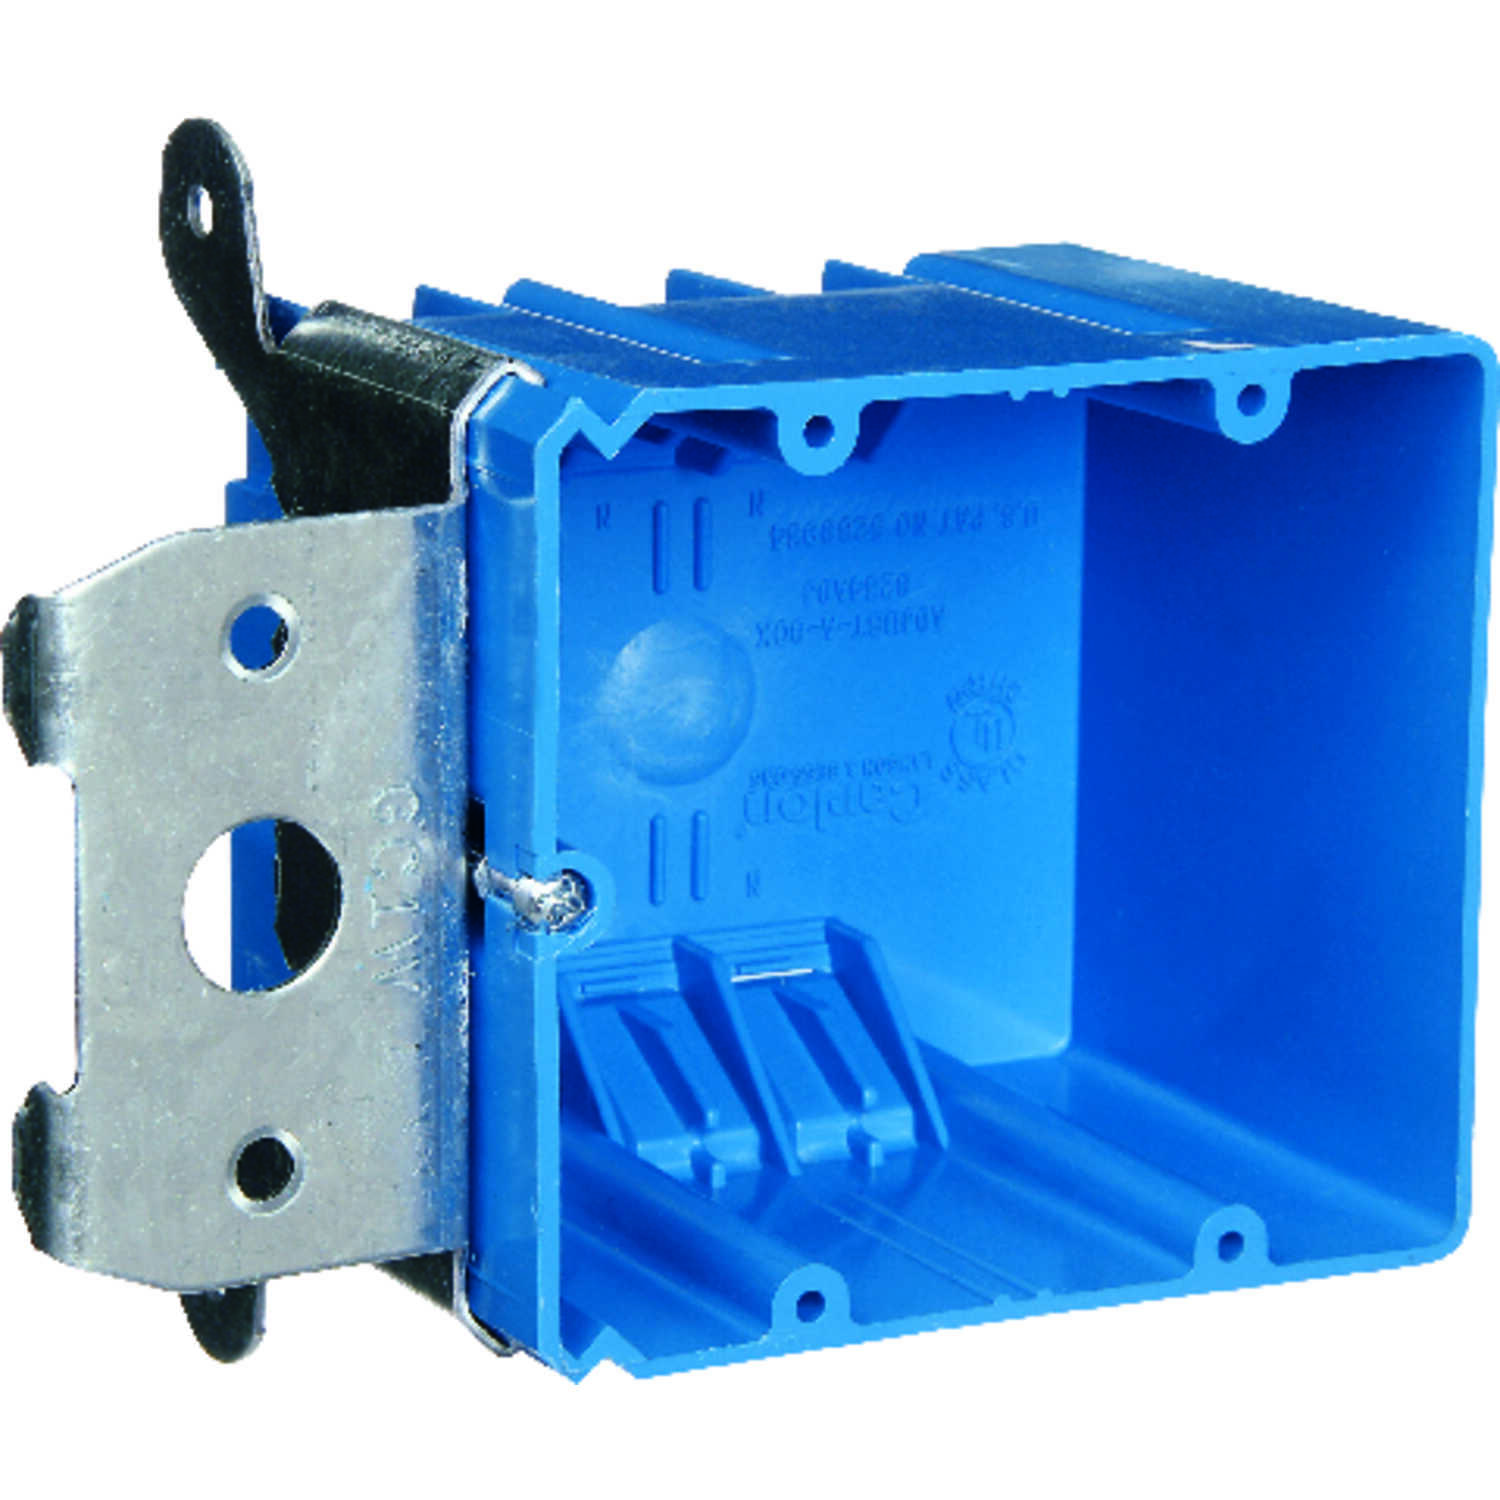 Carlon  Rectangle  PVC  2 gang 3-5/8 in. Outlet Box  Blue